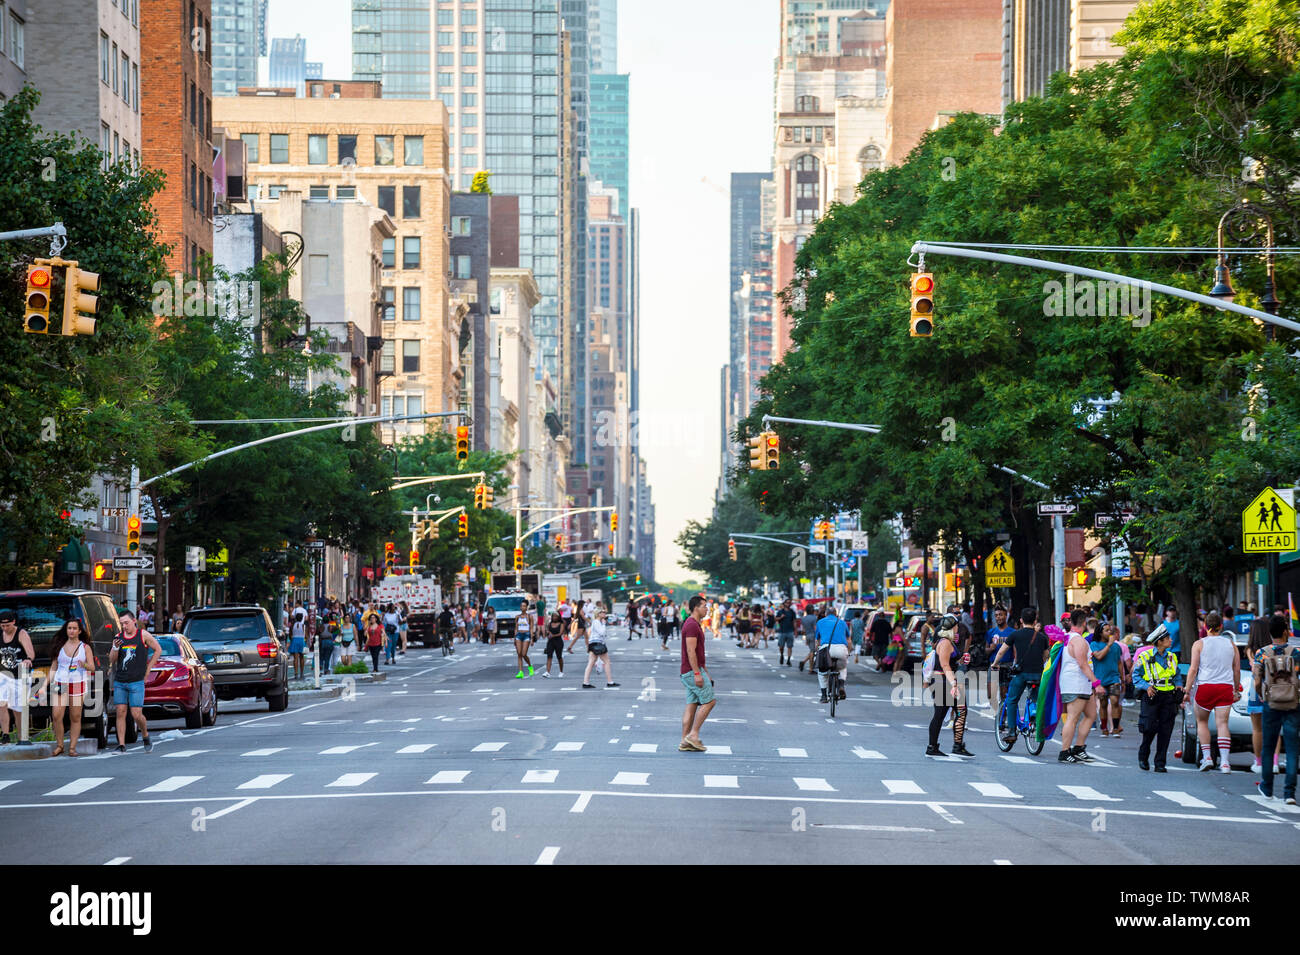 NEW YORK CITY - JUNE 25, 2017: The streets of Lower Manhattan are closed to traffic as supporters of the annual Gay Pride Parade flood downtown. - Stock Image